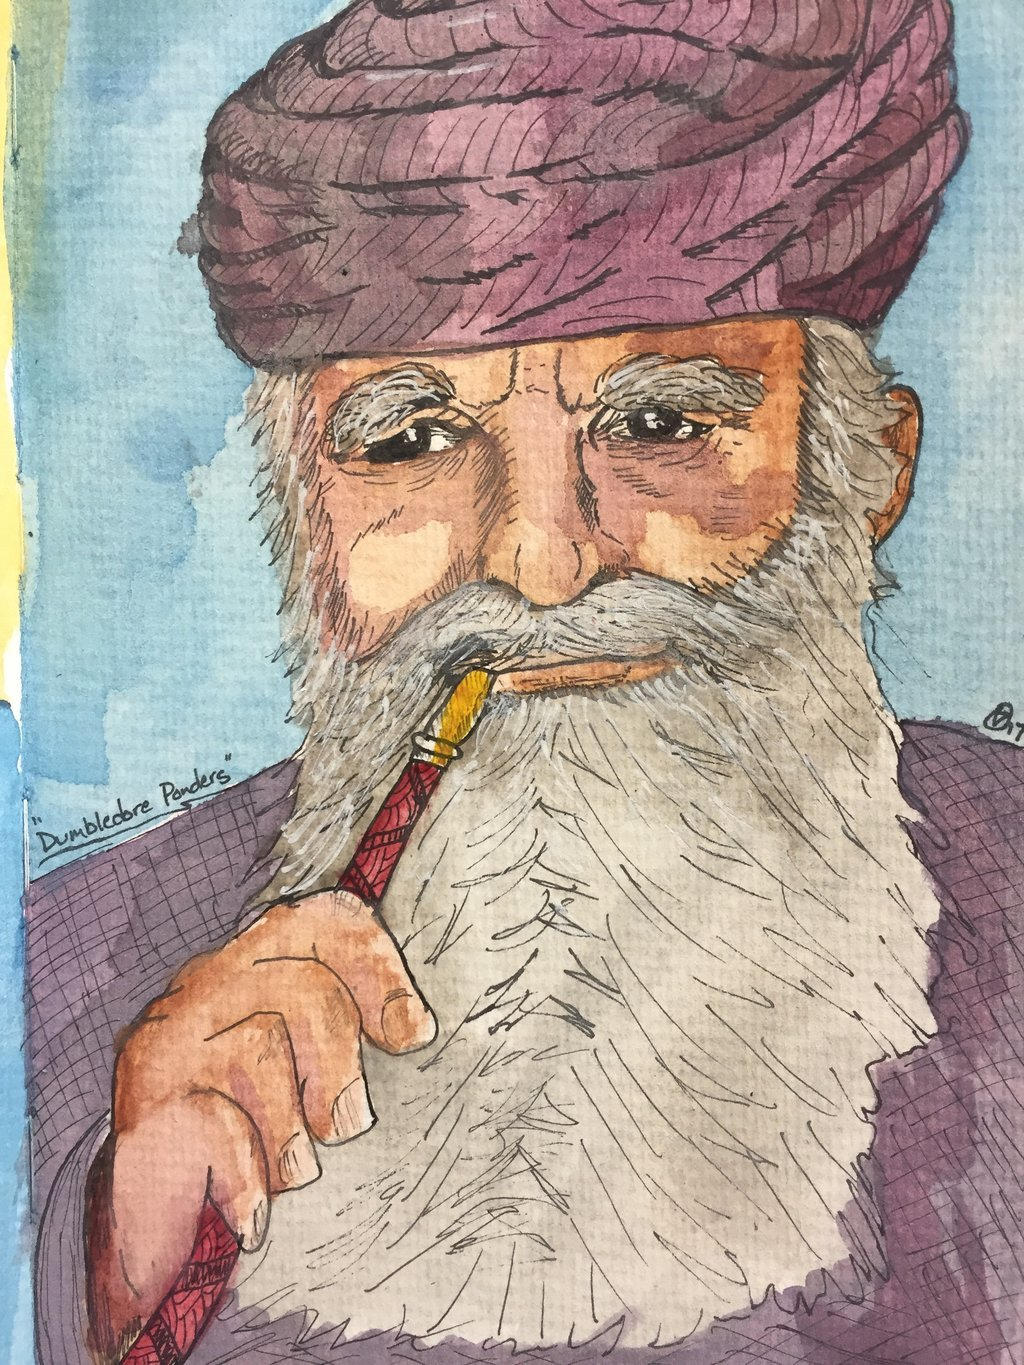 Dumbledore ponders  by GentlestGiant